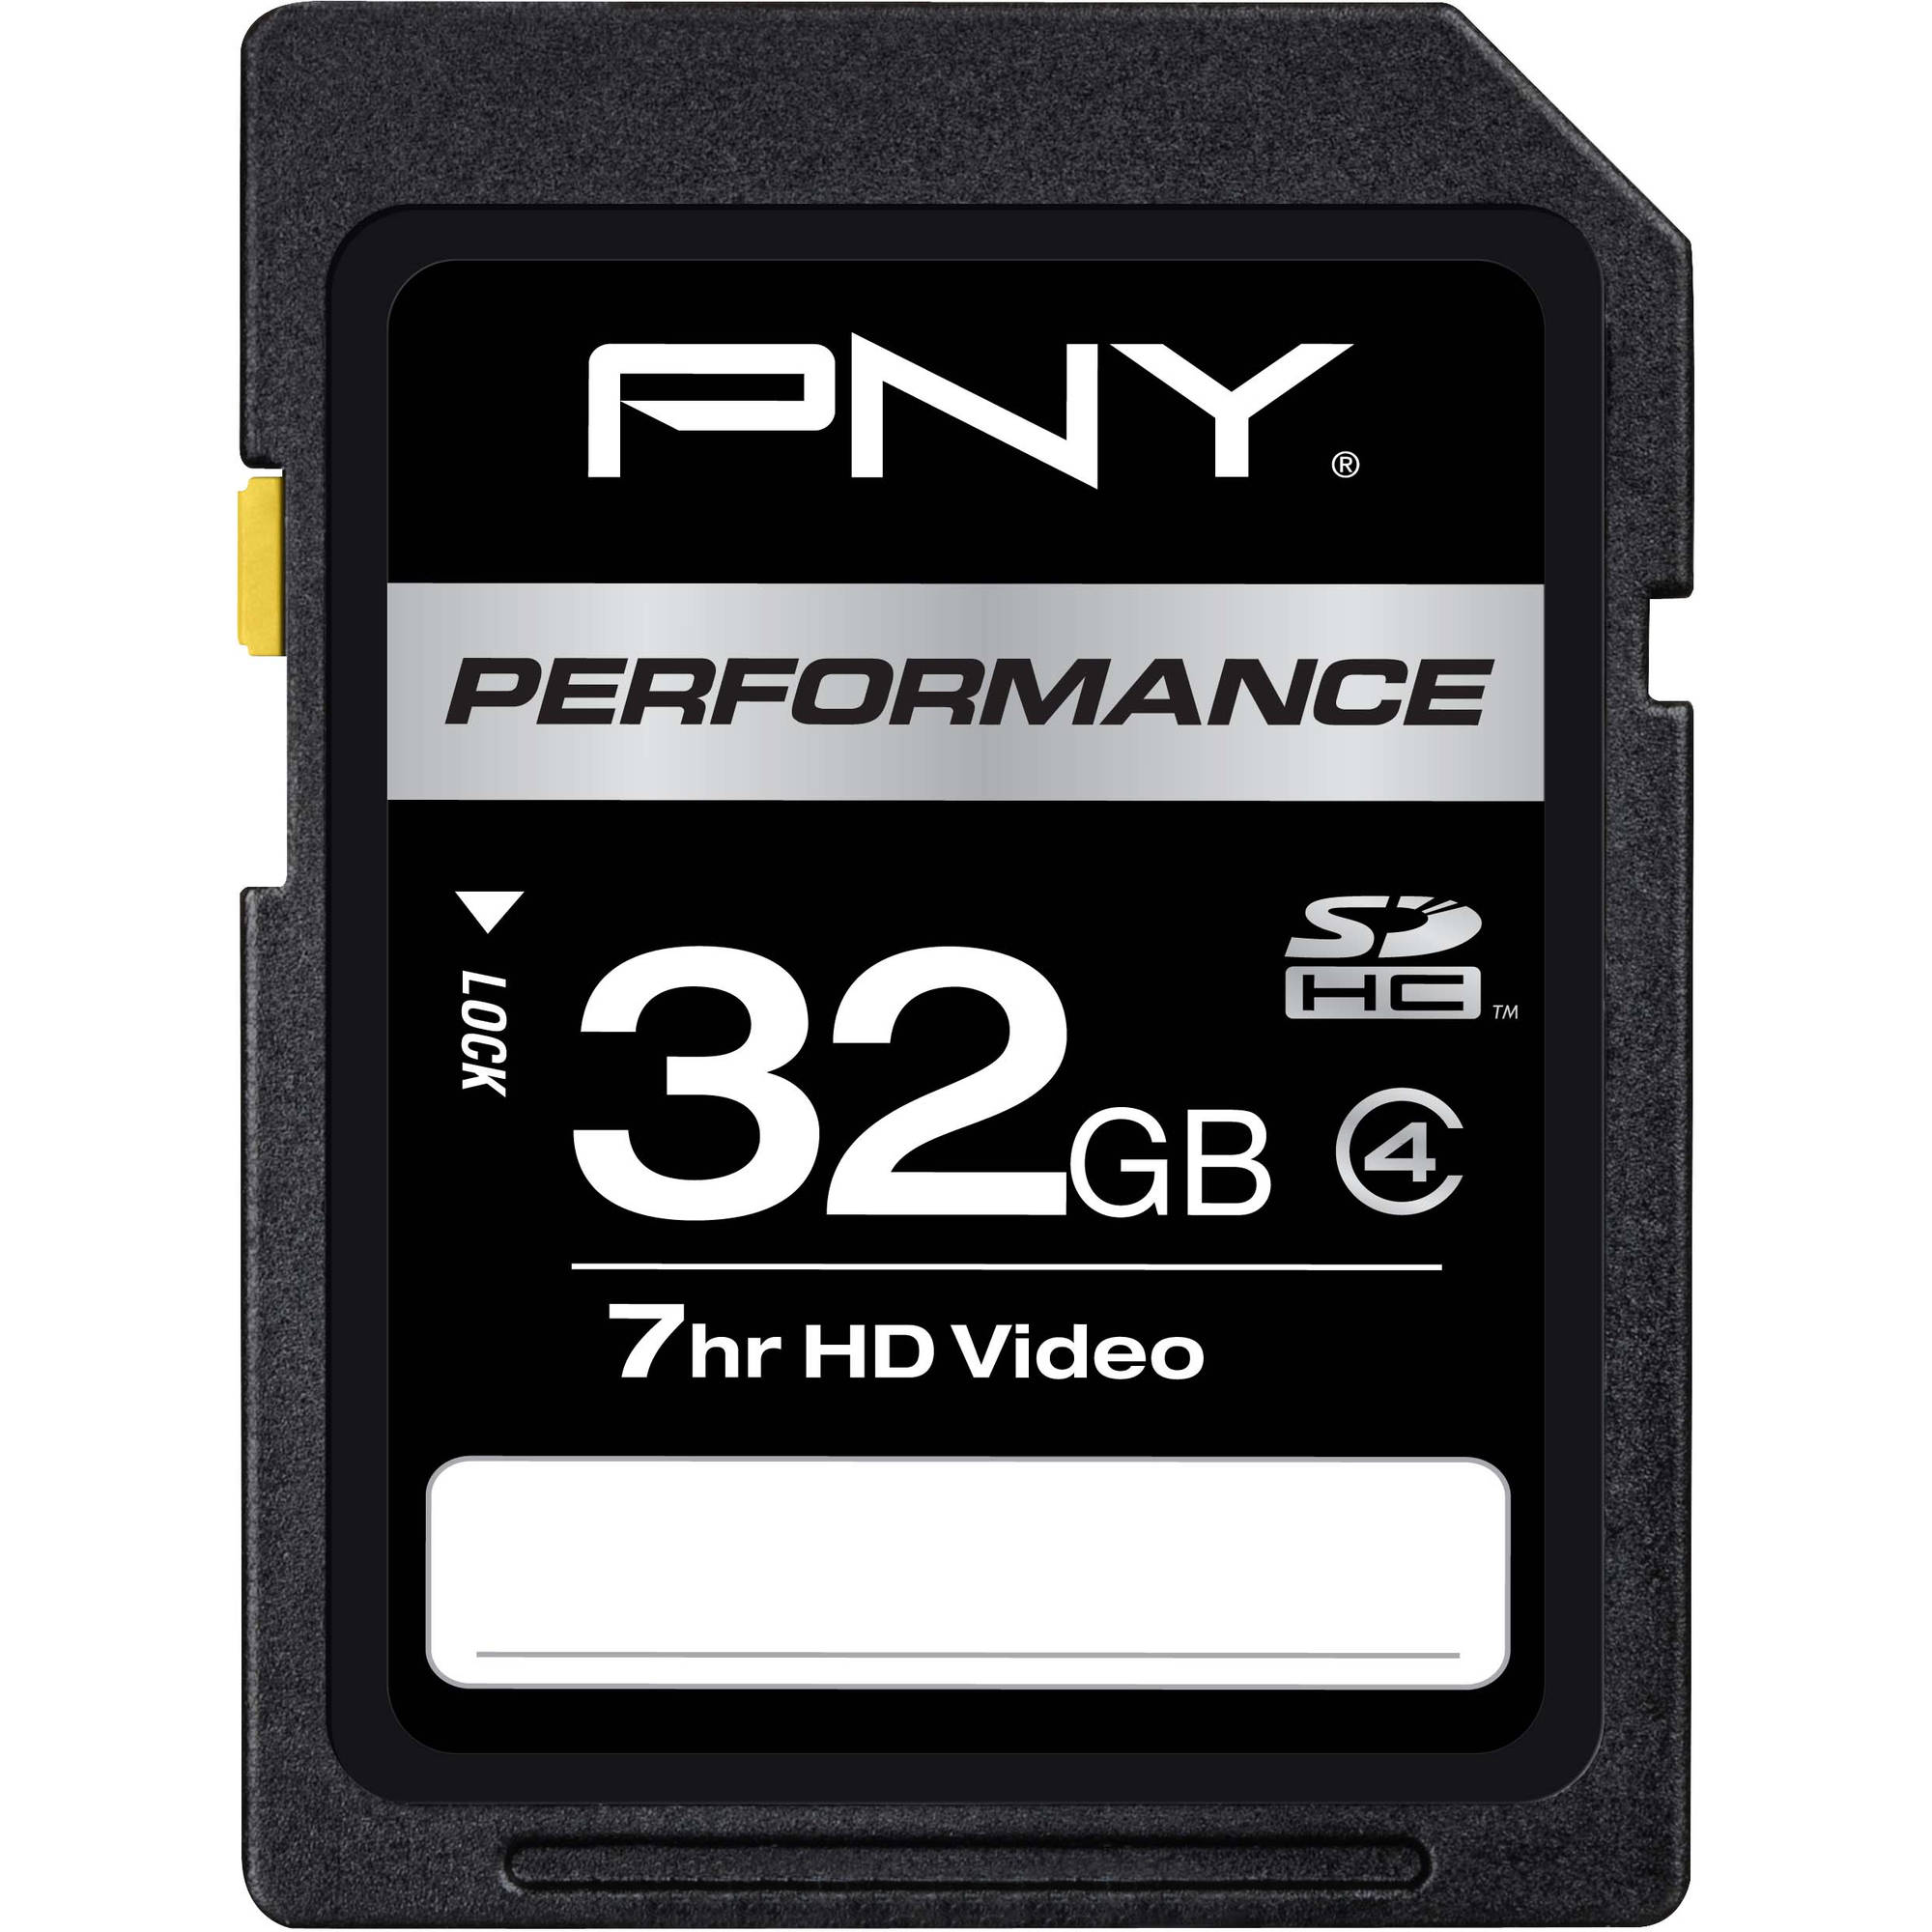 PNY Technologies 32GB Class 4 SDHC Card